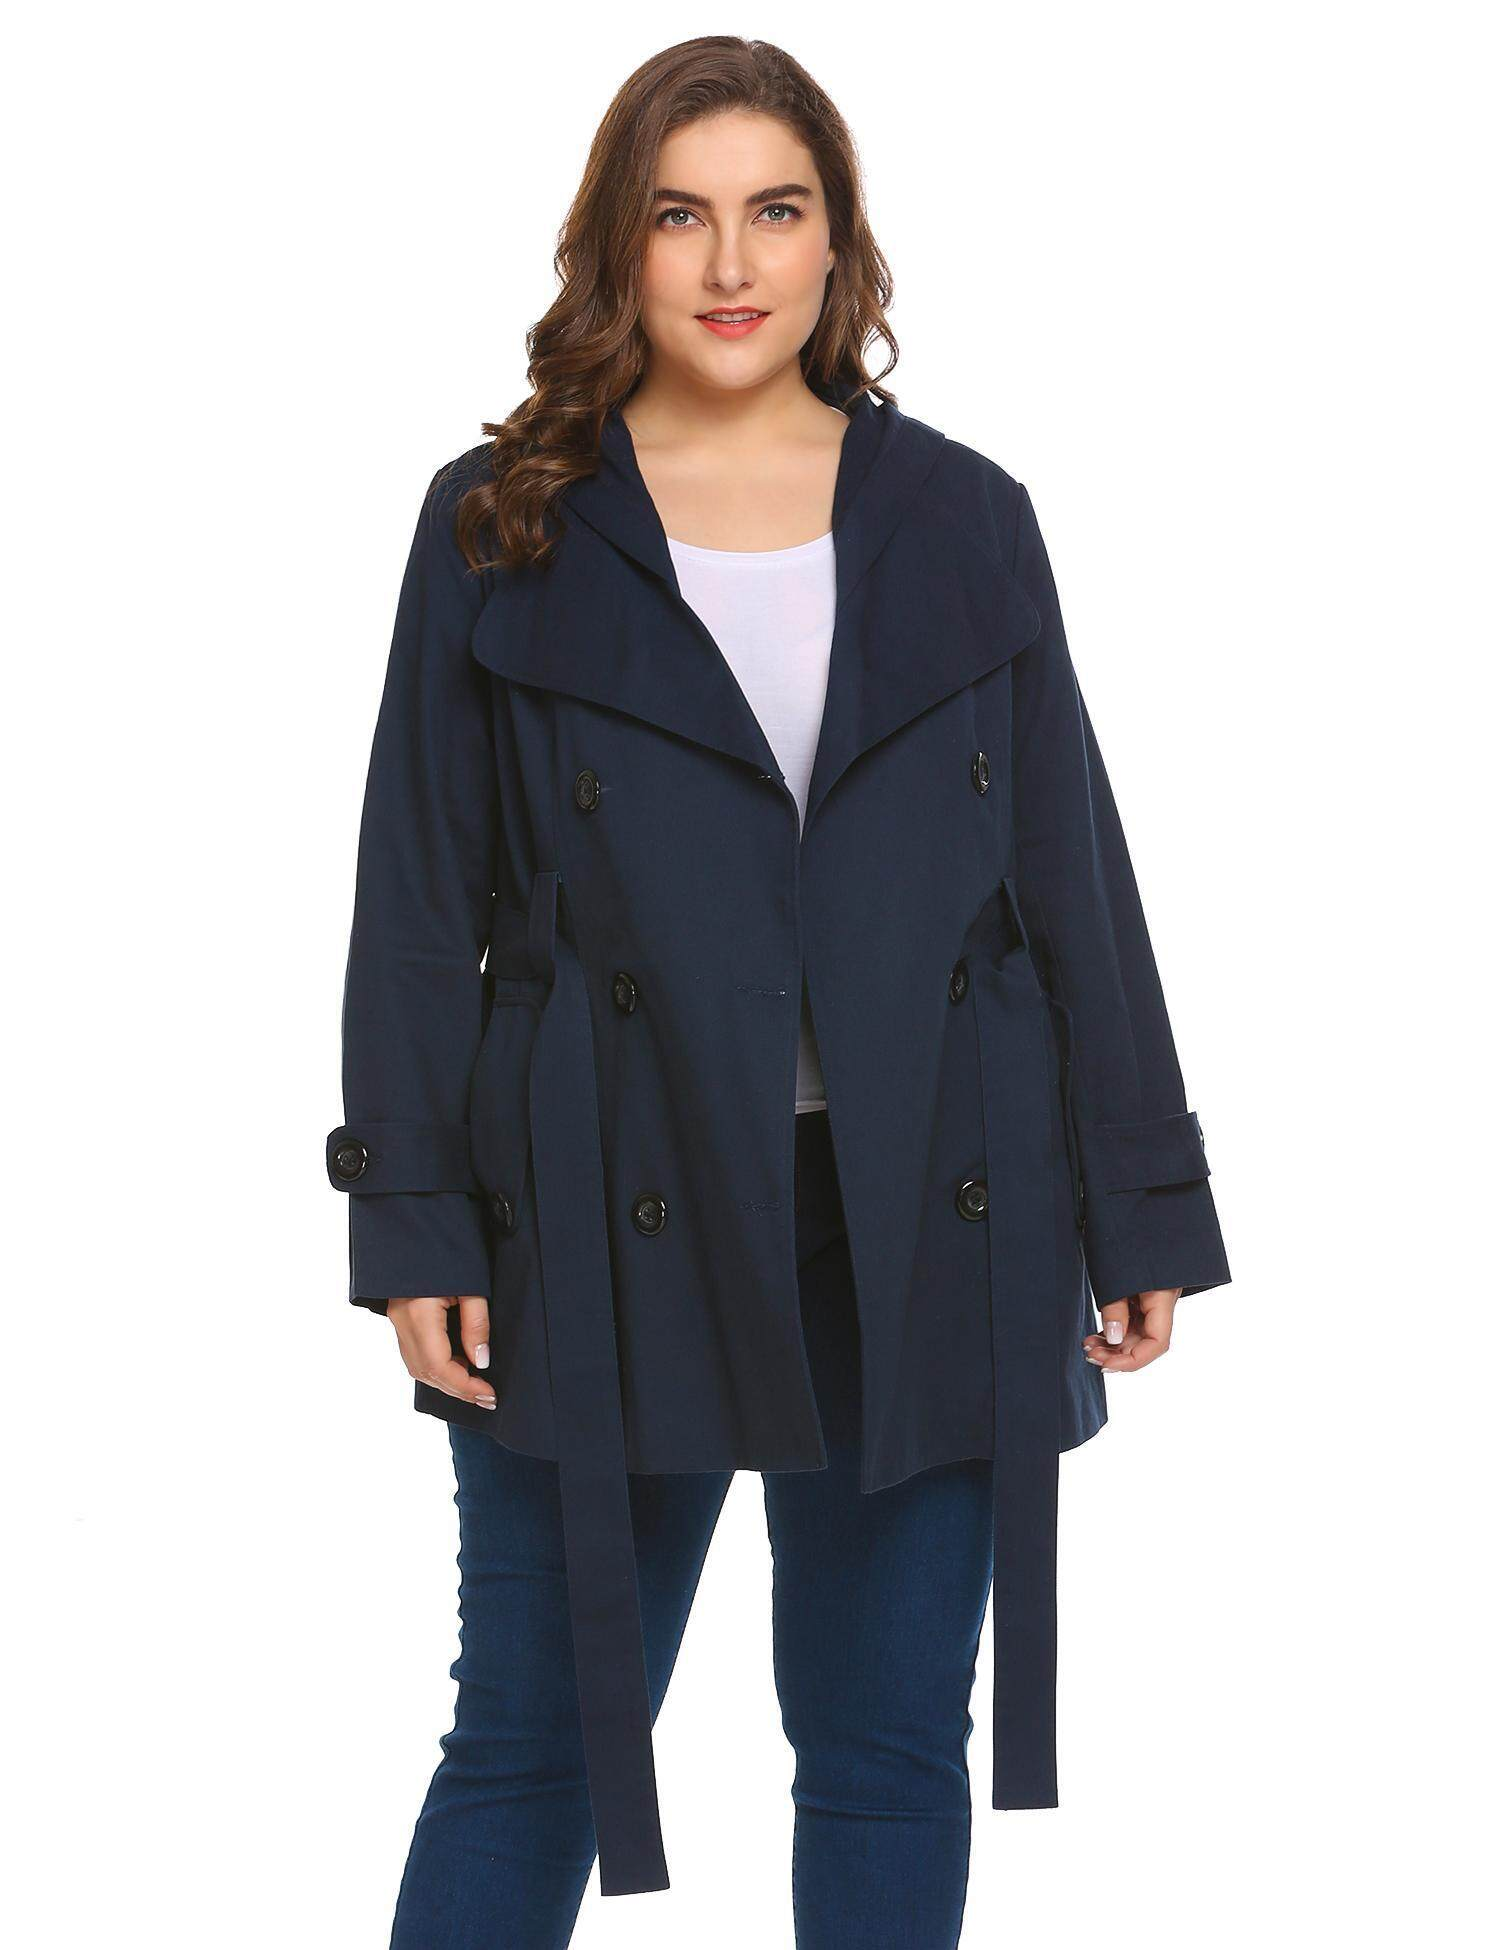 52e7eb1f8f9 BEST SELLER Sunwonder Women Hooded Double Breasted Solid Casual Trench Coat  with Belt Plus Size(